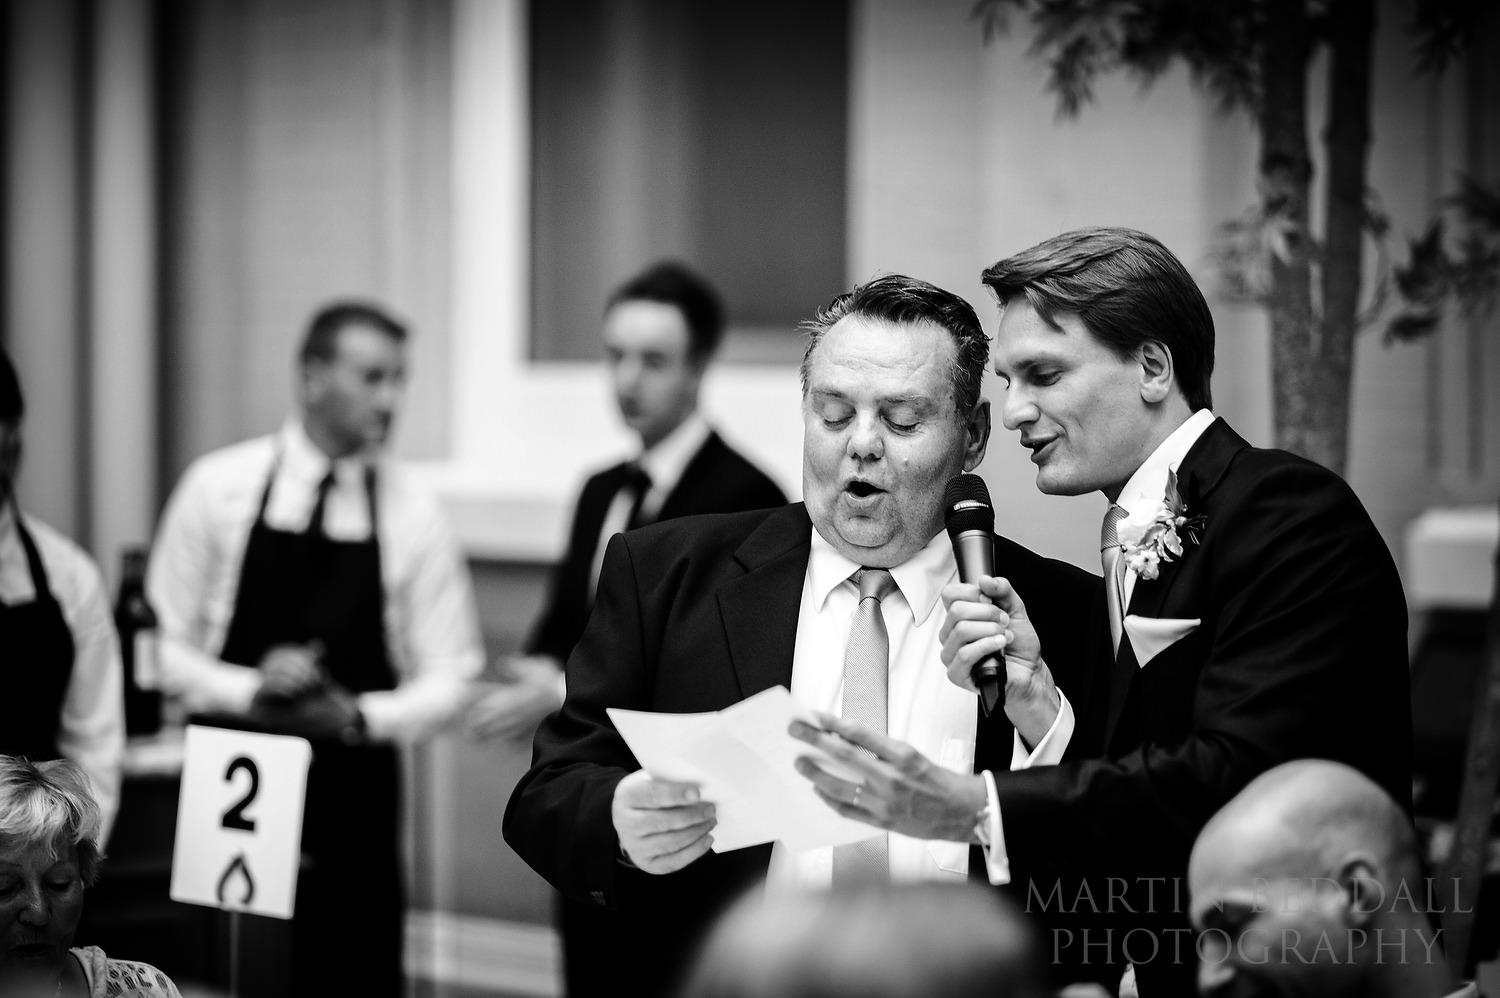 Singing at Wallace Collection wedding reception